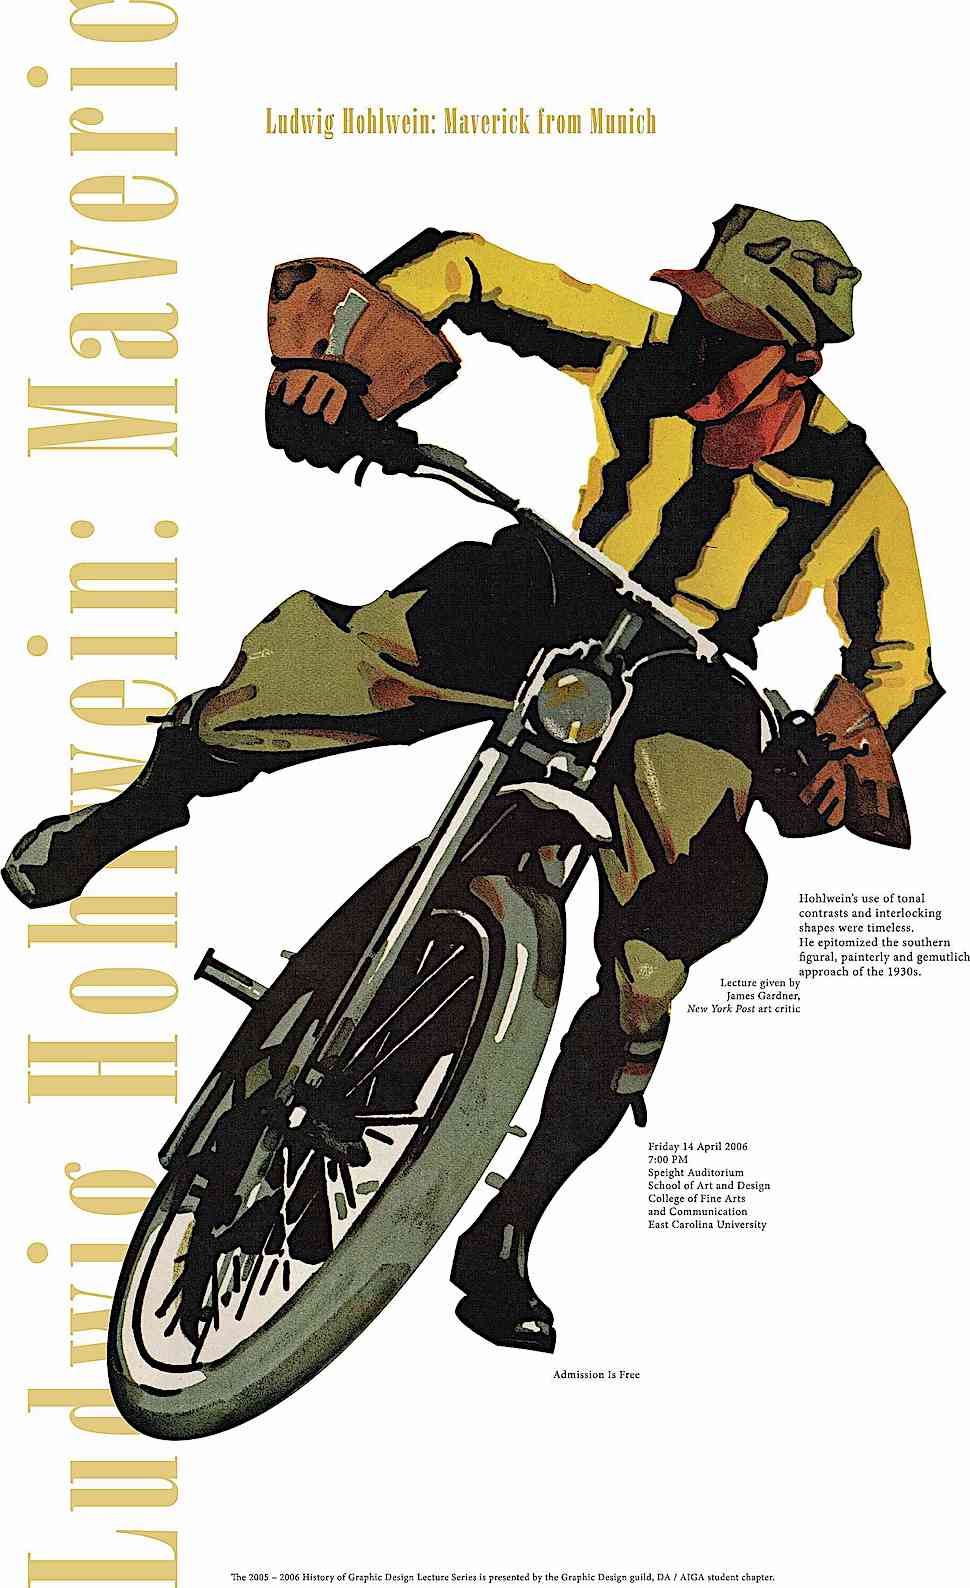 a Ludwig Hohlwein poster for a modern lecture on Ludwig Hohlwein, Maveric From Munich, image of a vintage motorcycle racer